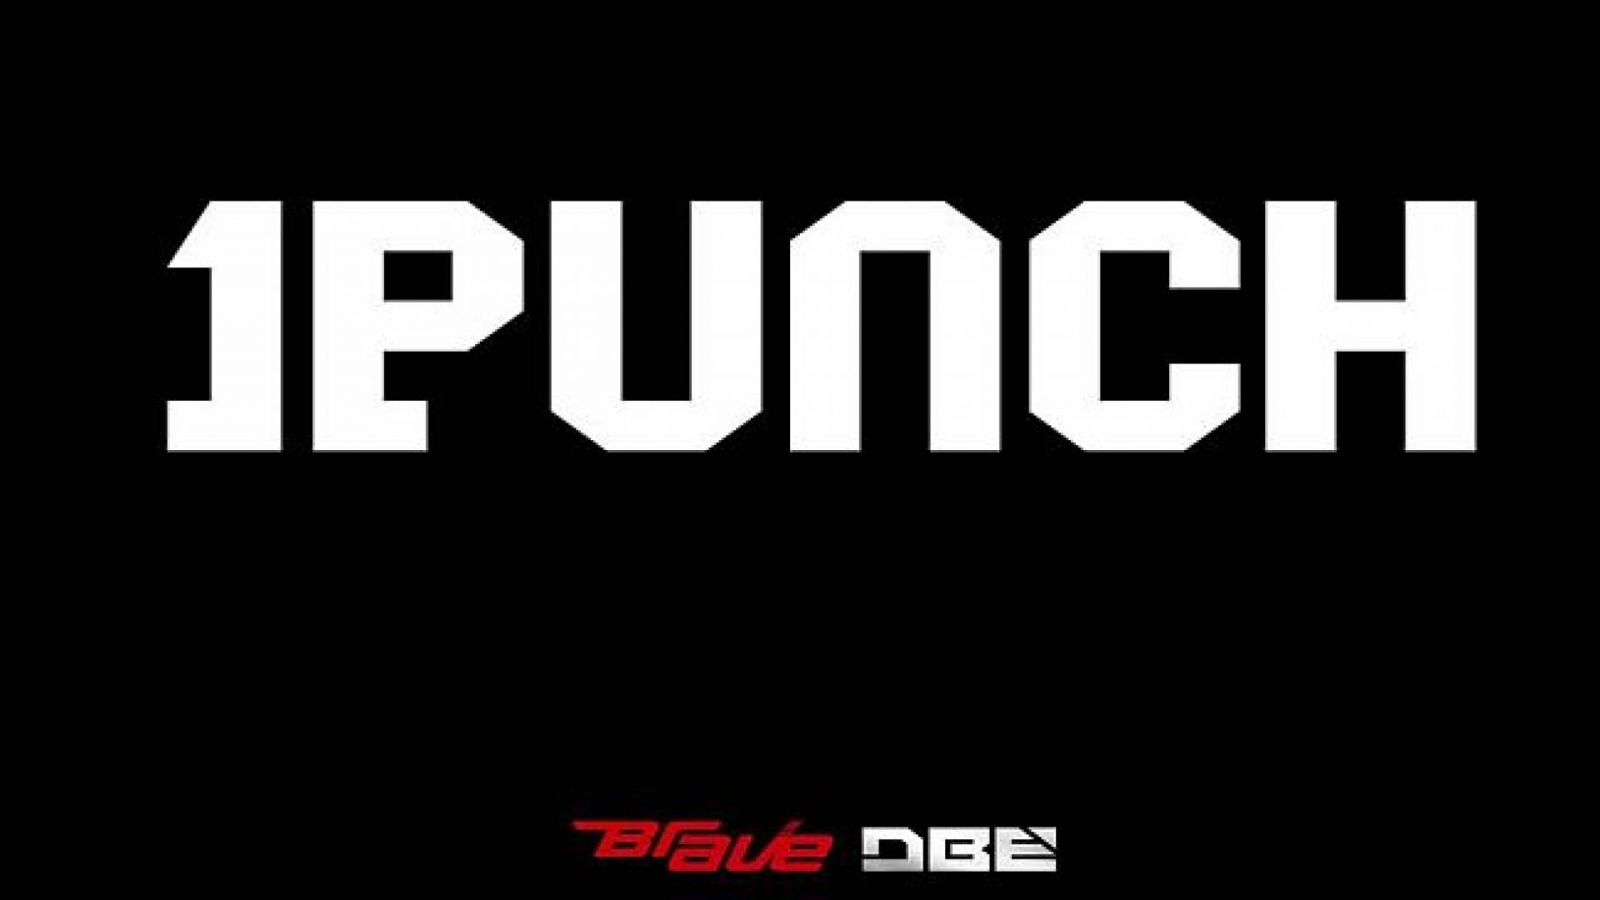 1PUNCH: novo grupo a estrear em 2015 © Brave Entertainment, DBE